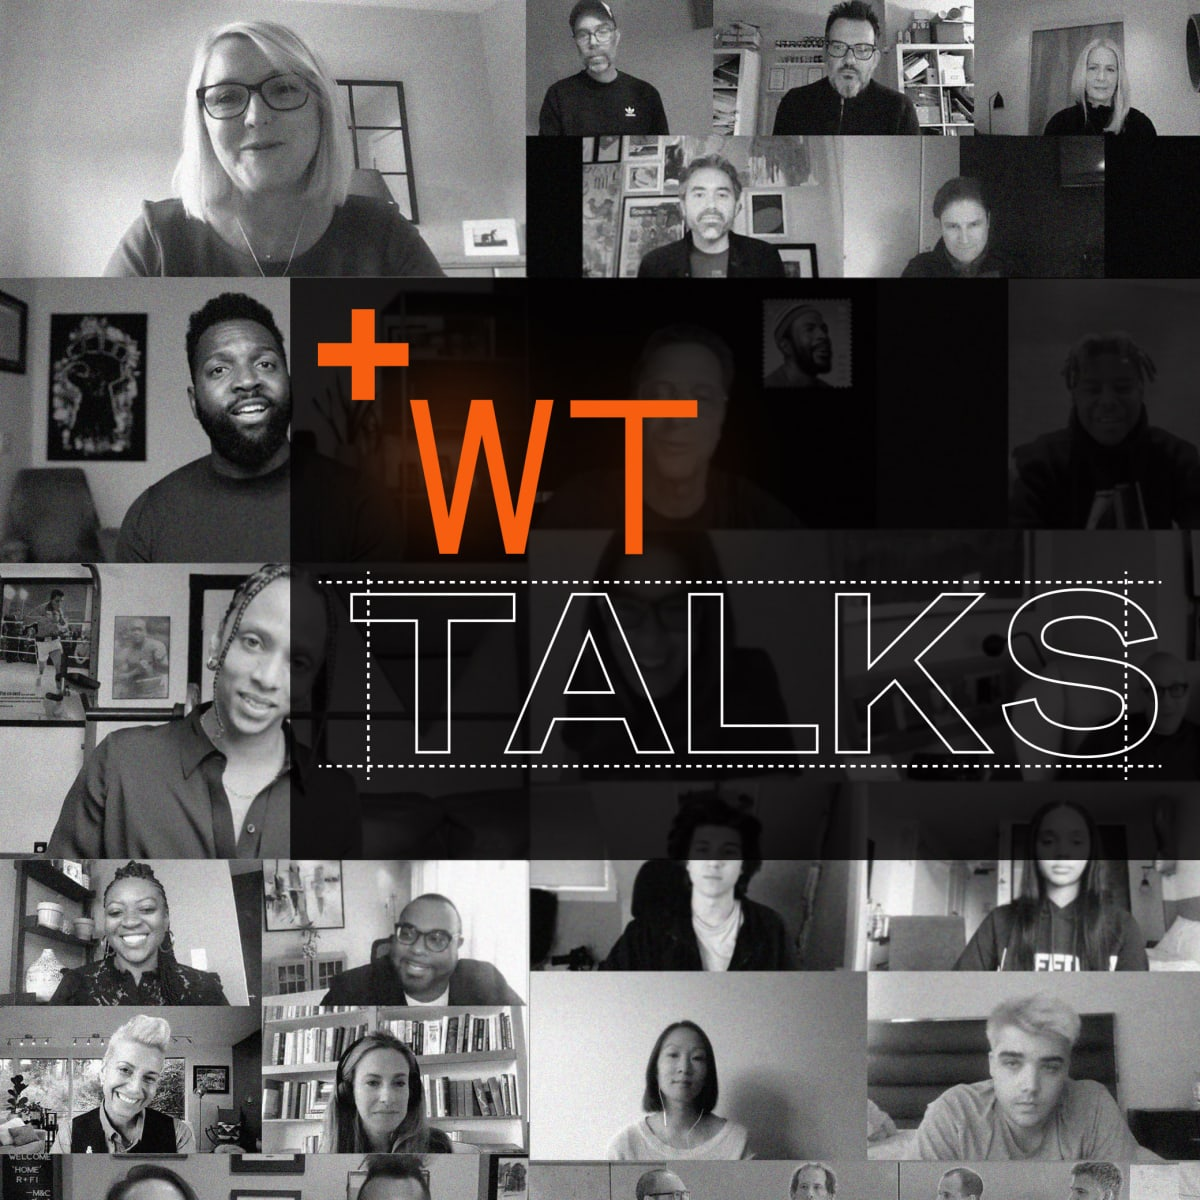 collage of event speak profile pics from WT Talks event